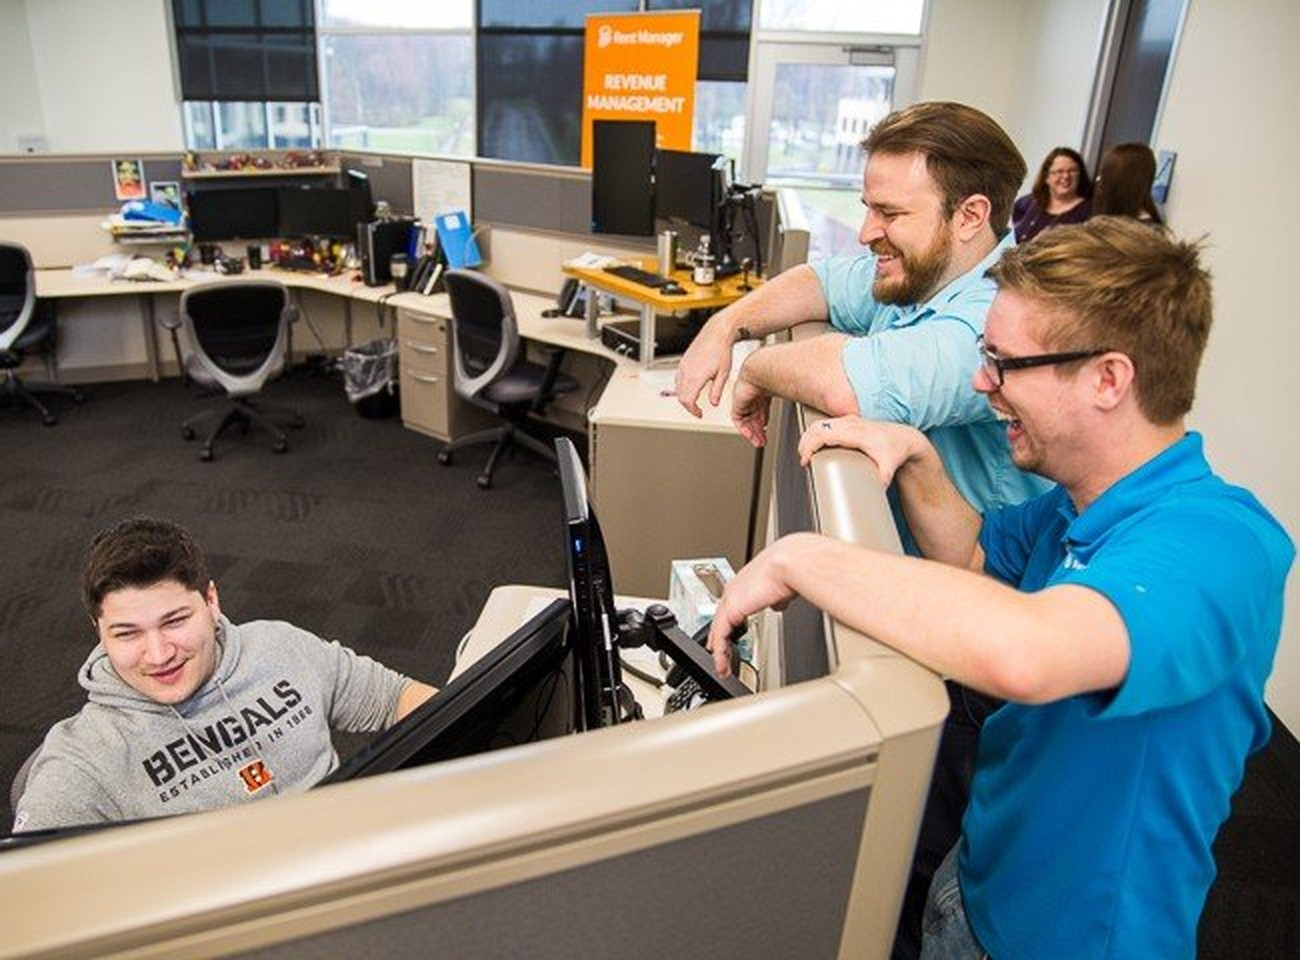 London Computer Systems Careers